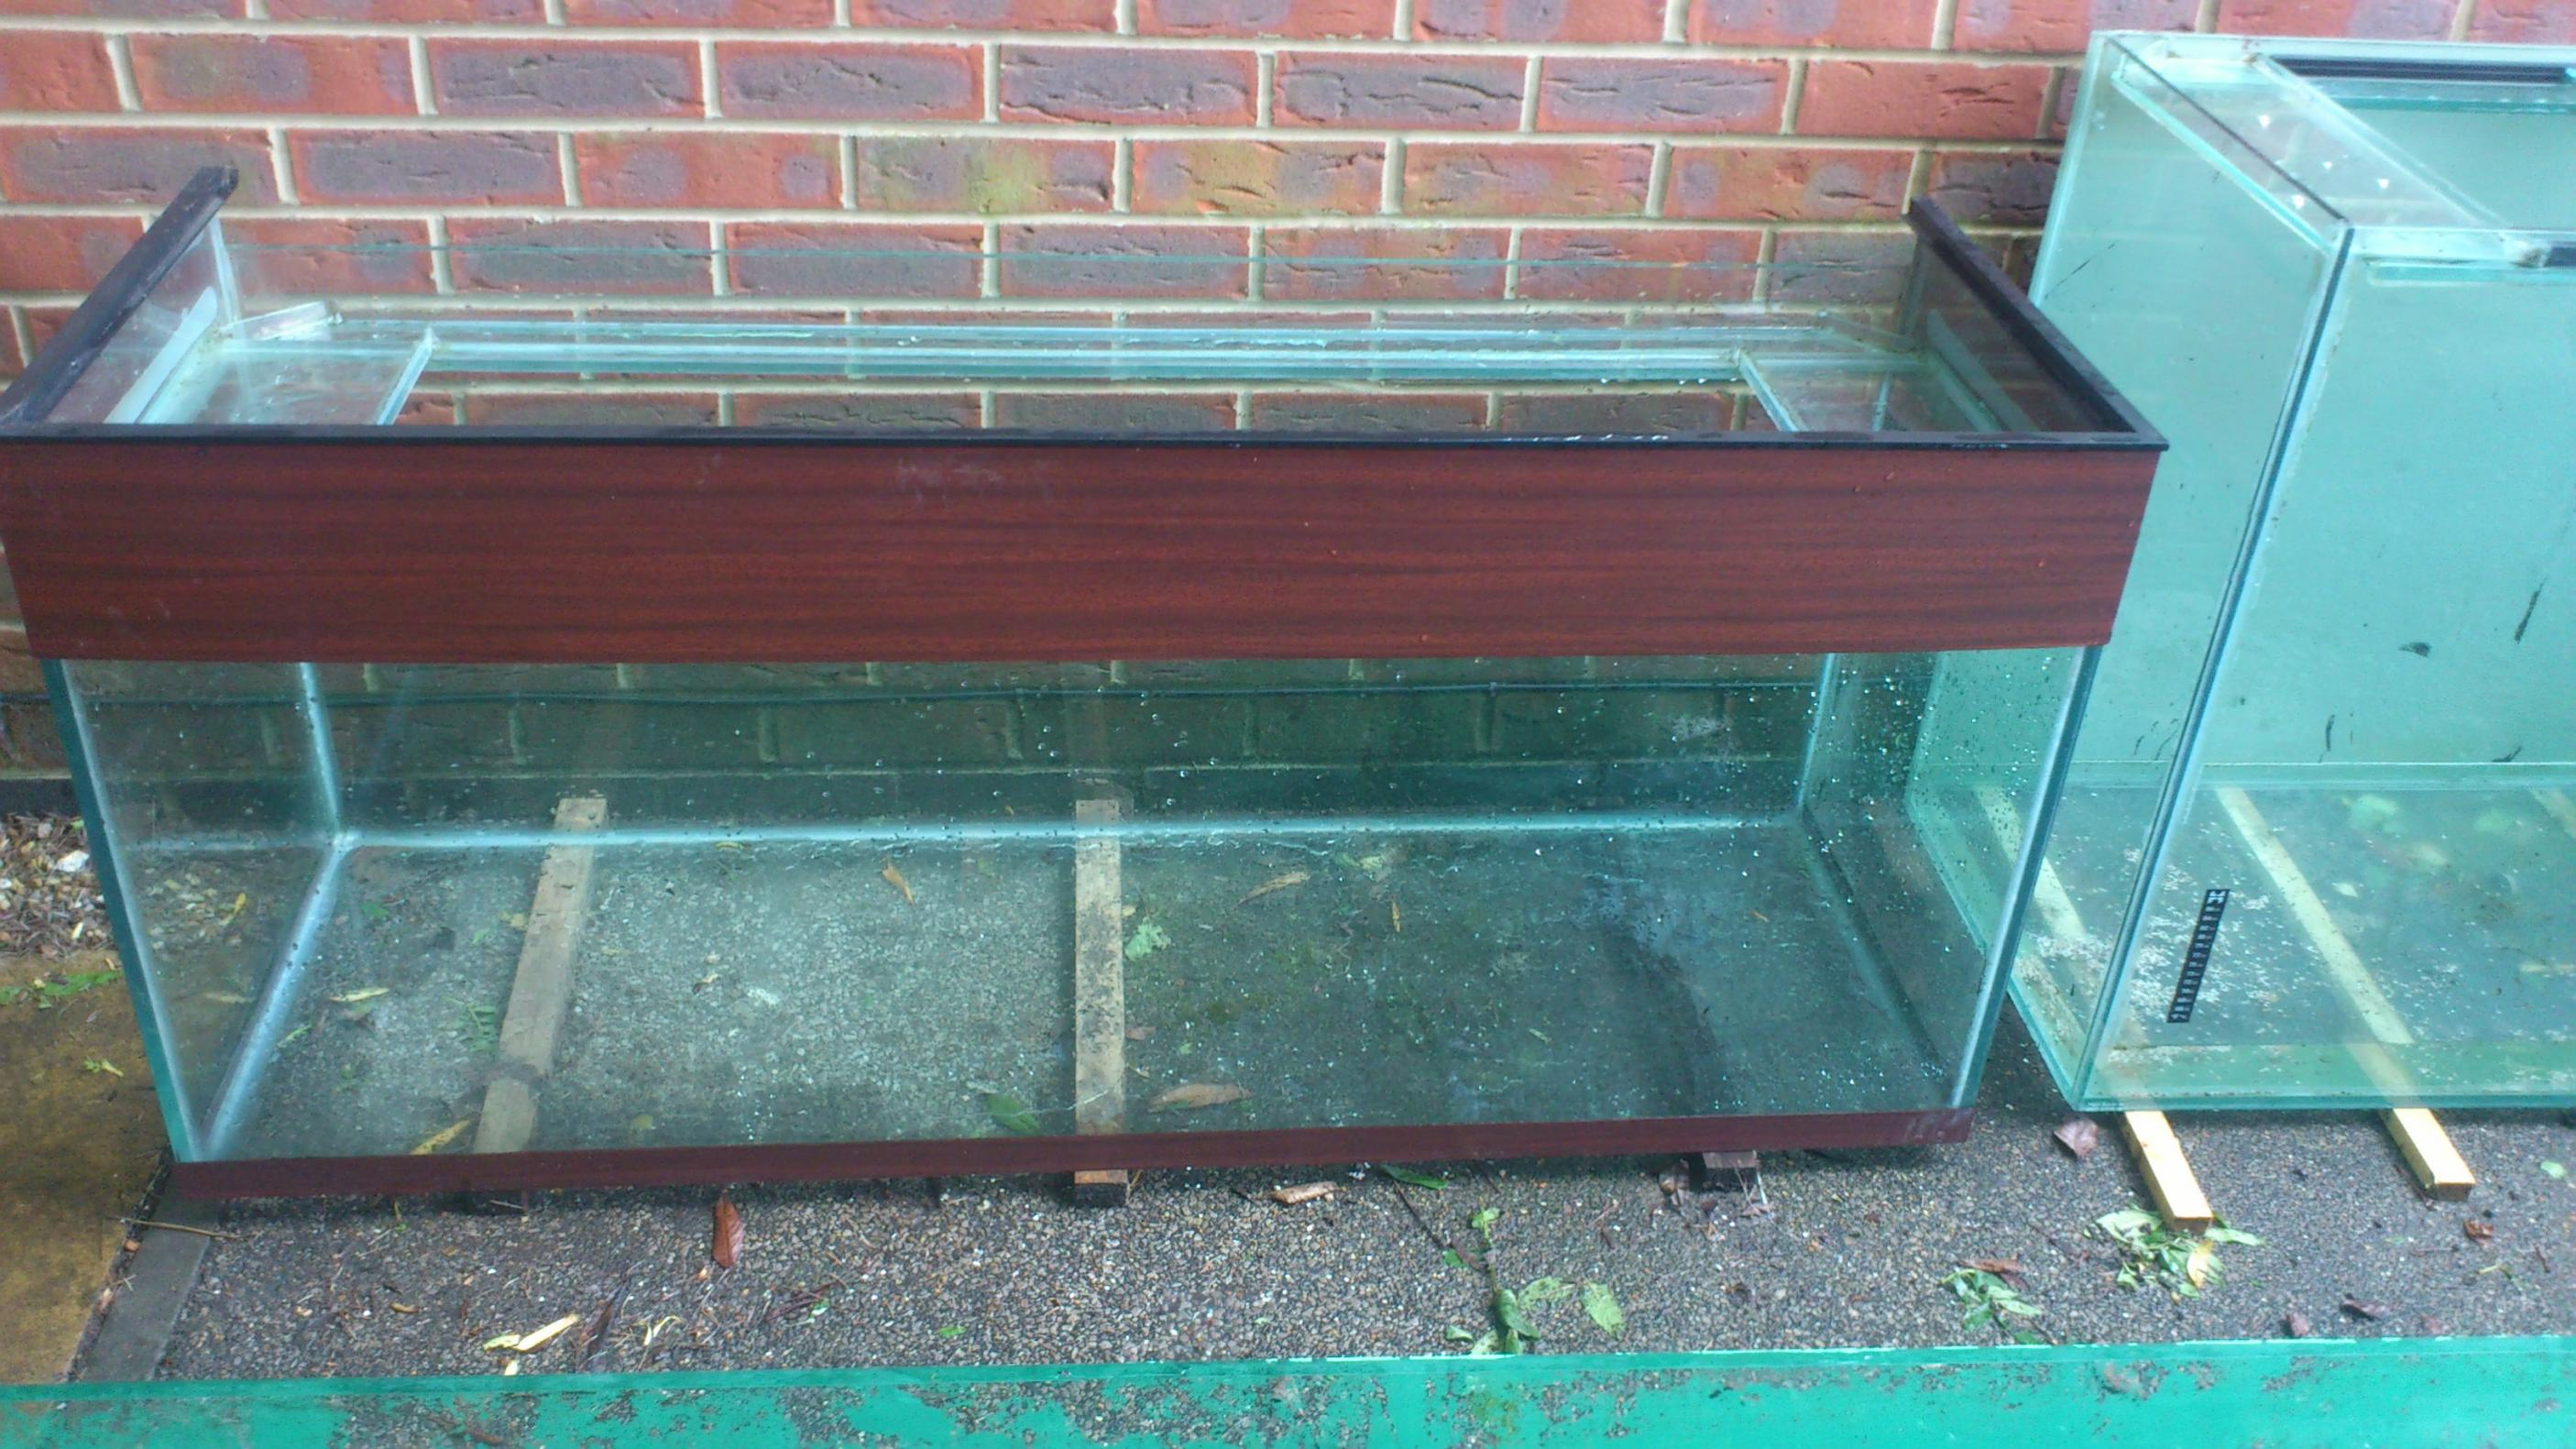 Fish Tank Cheap : SE England 3 Huge Fish tanks, really cheap! - Reptile Forums